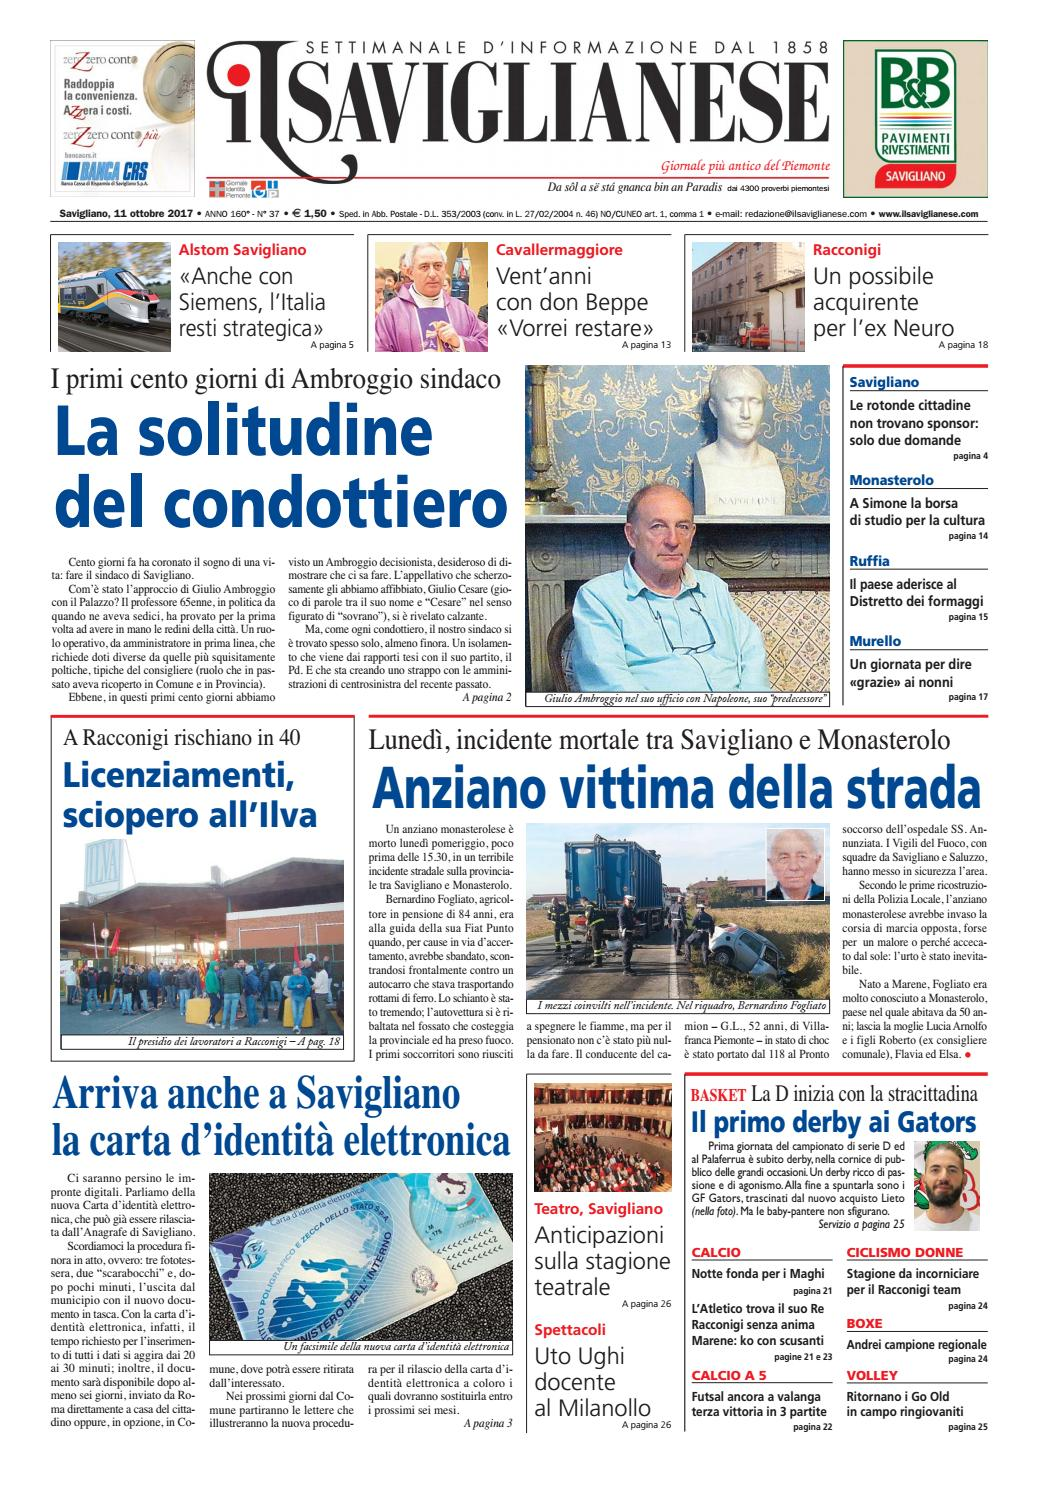 11 10 2017 by Valerio Maccagno - issuu 1608a8056229